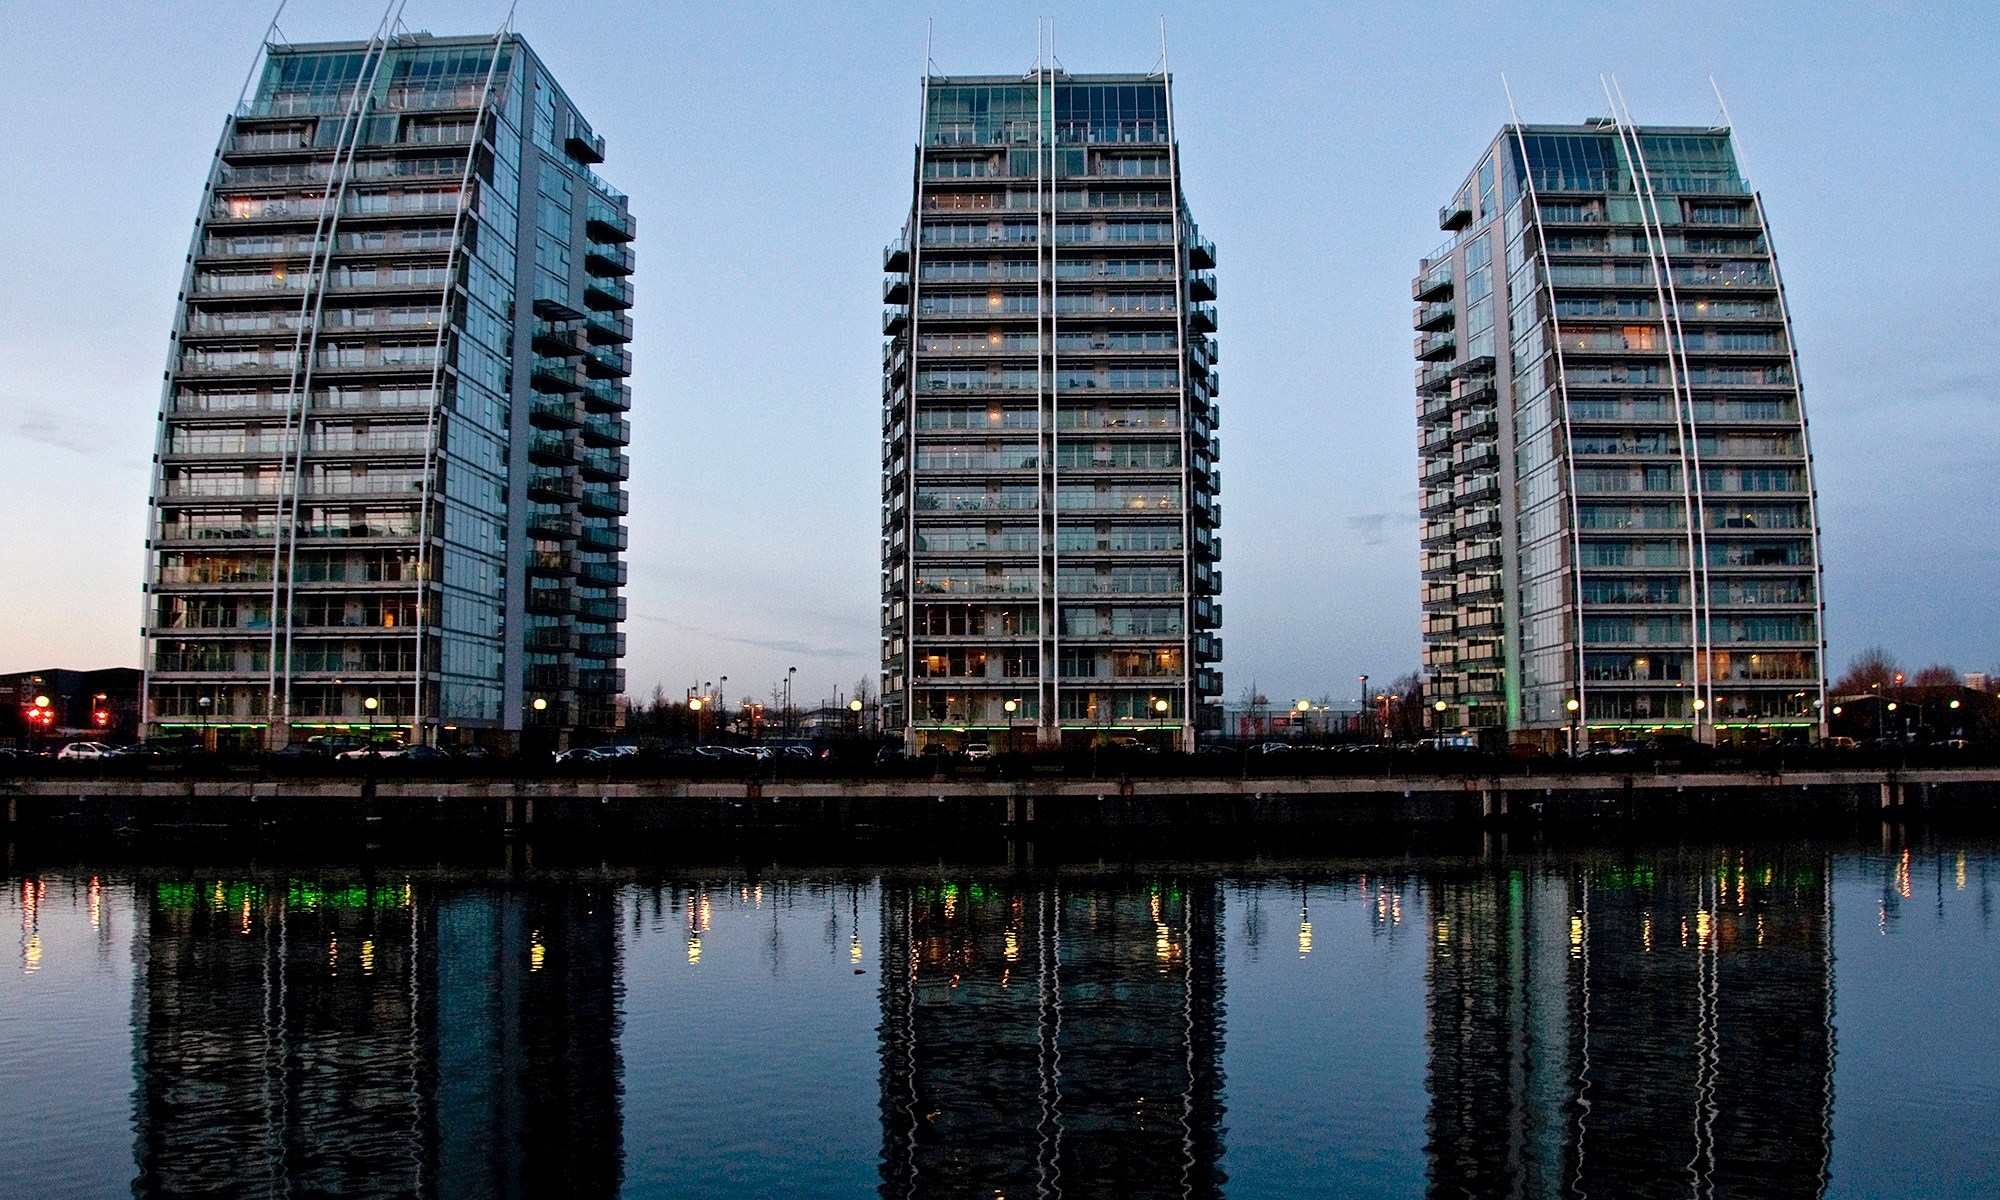 NV Buildings at Dusk, Salford Quays